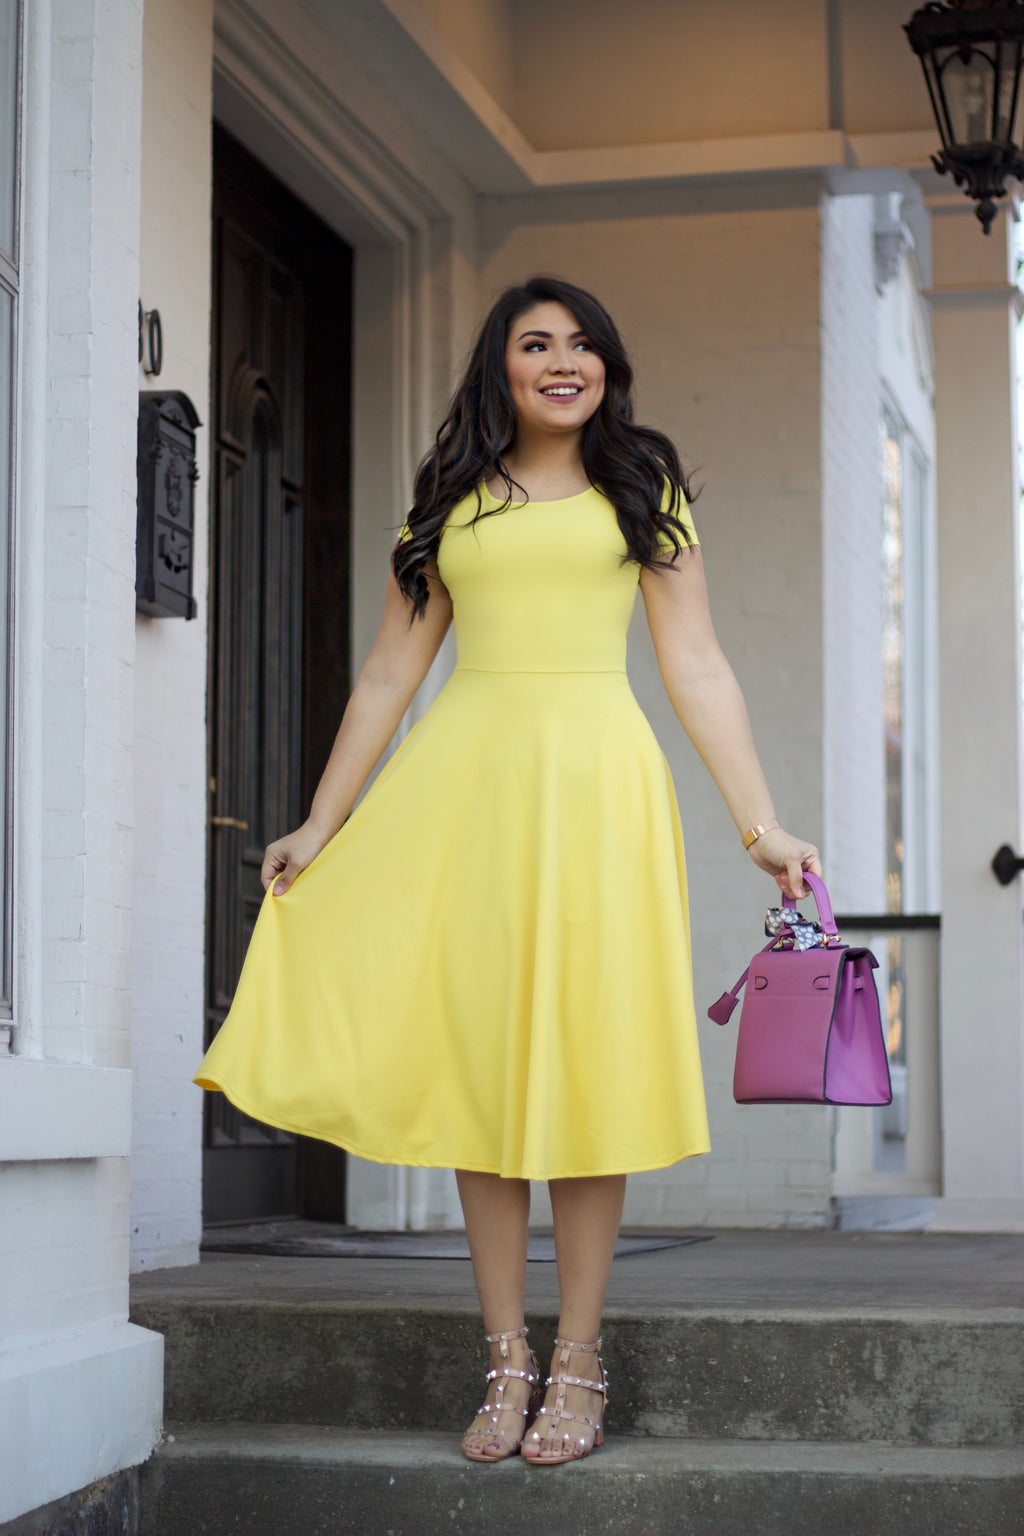 Ray Of Sunshine Dress - The Darling Style - Modest Dresses